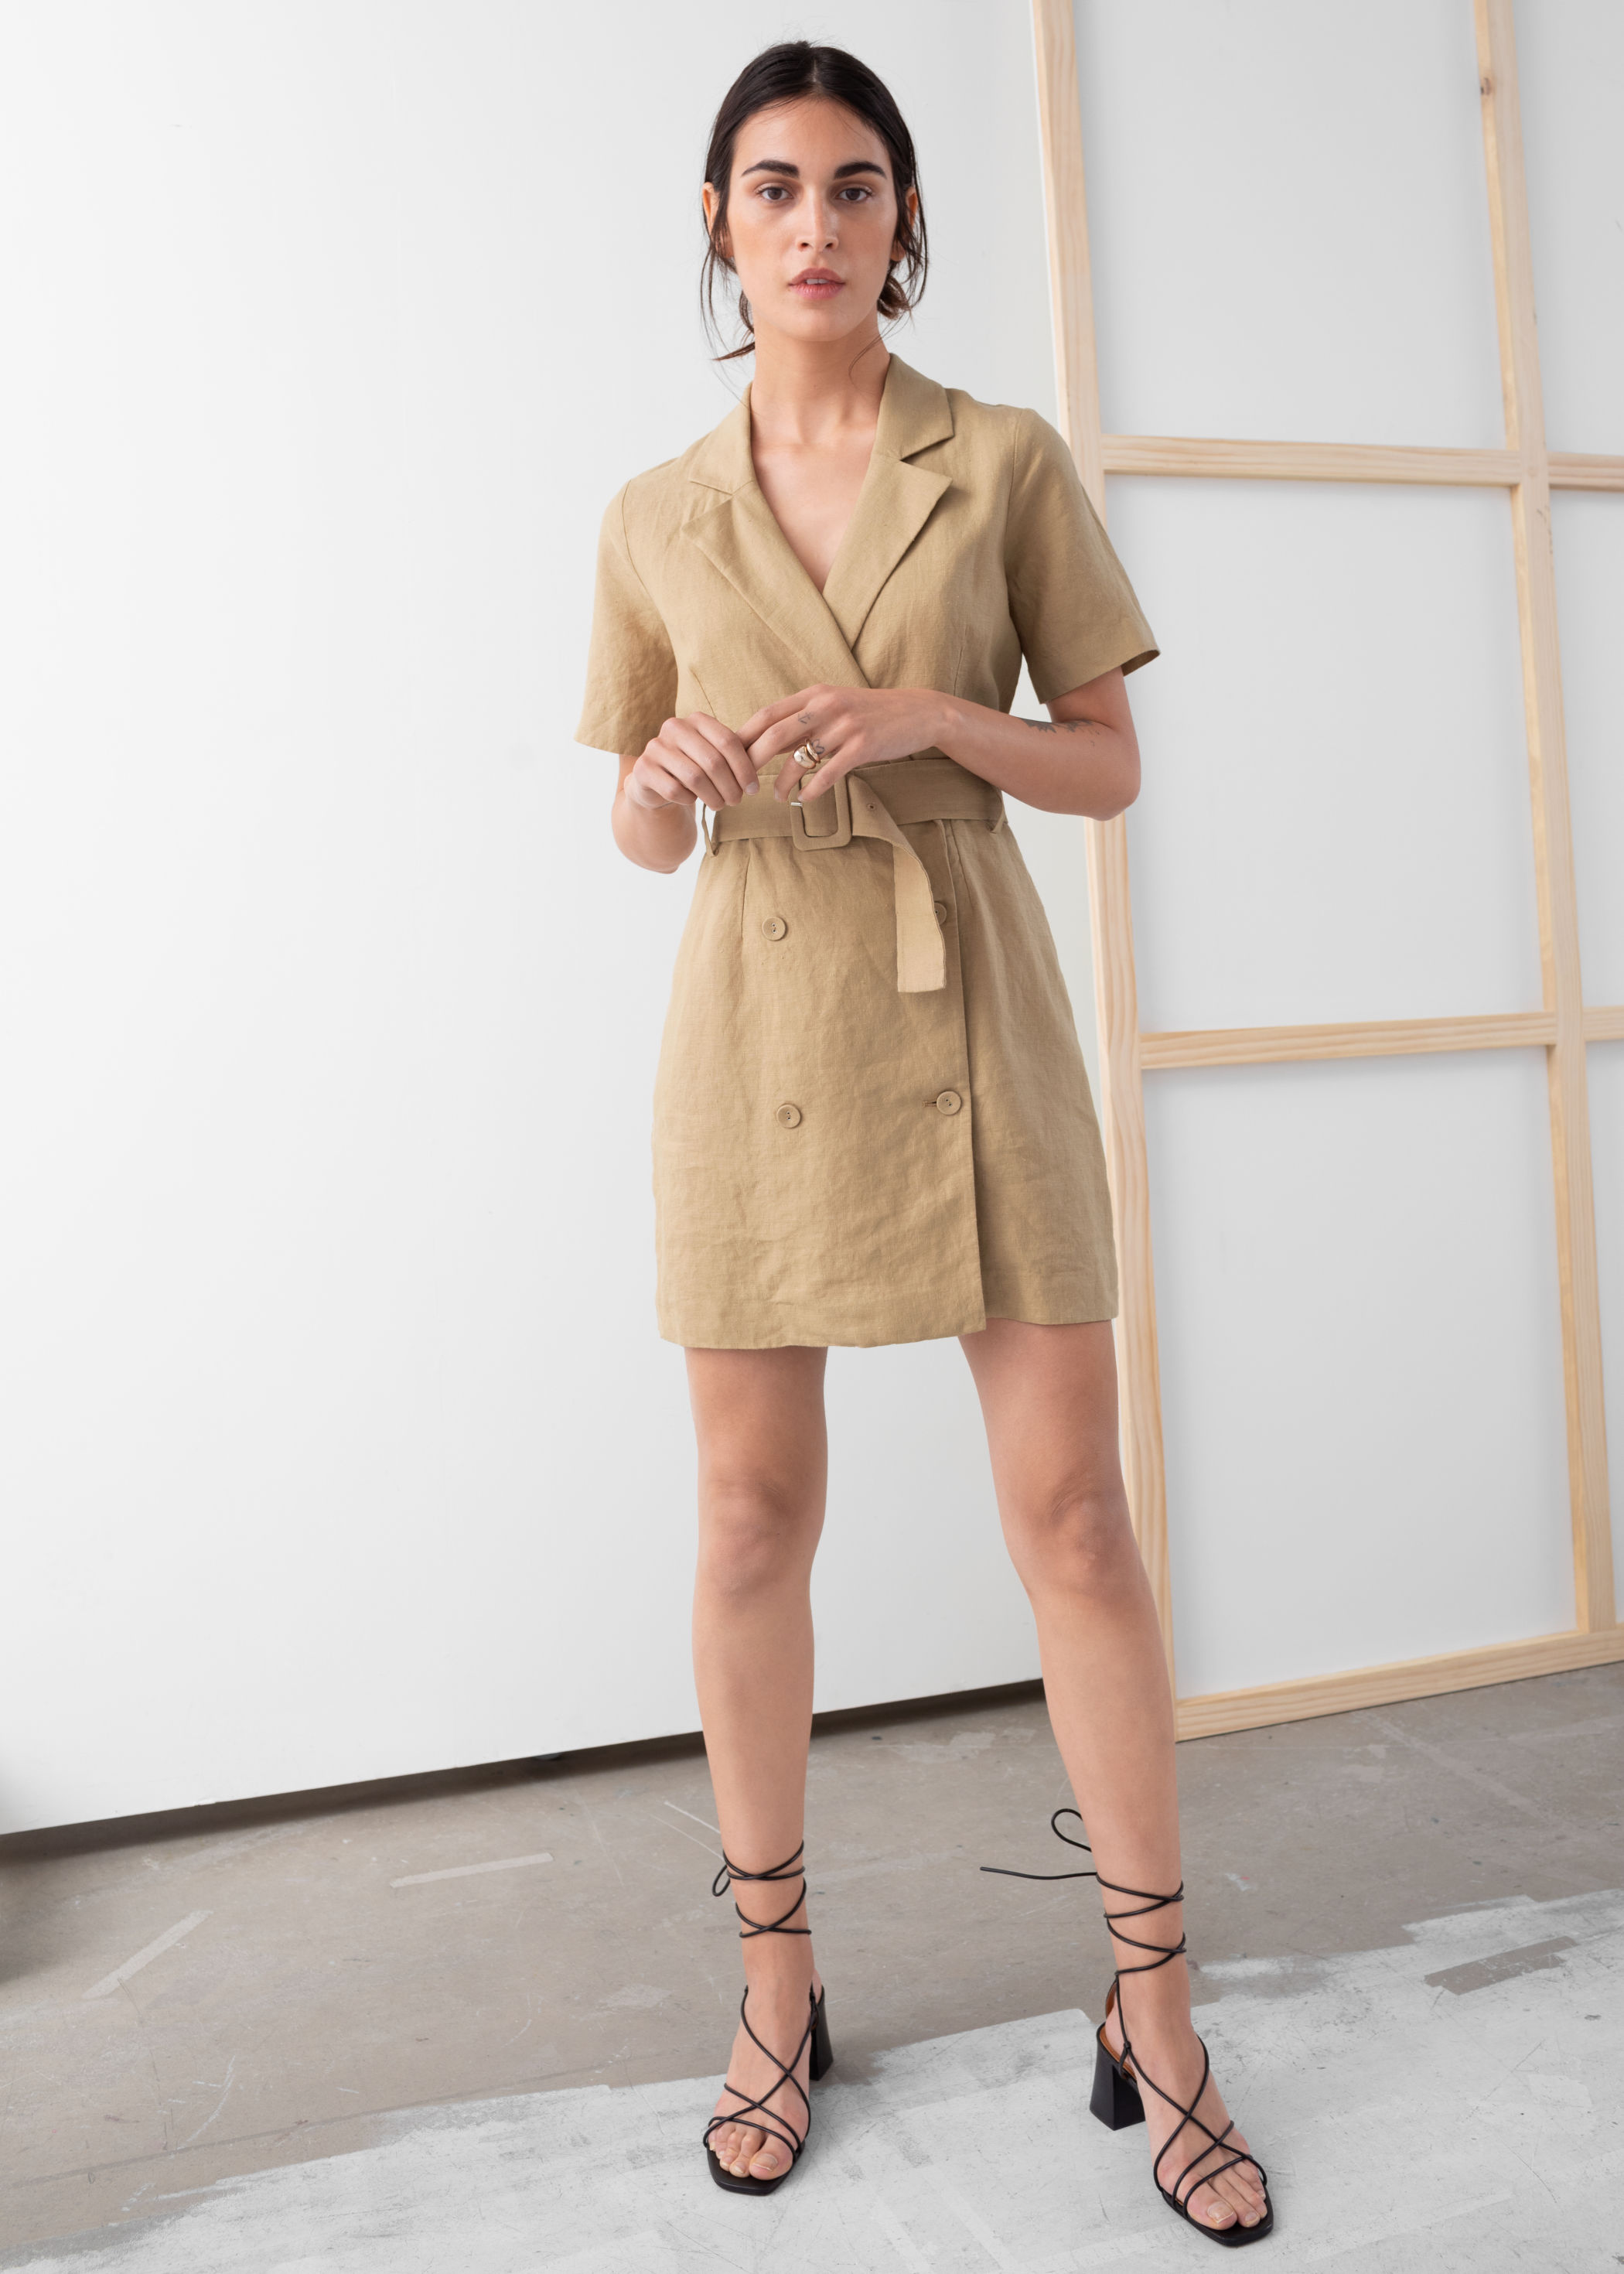 & Other Stories - Belted Linen Trench Mini Dress / $119.00This is the definition of effortless chic. Not only is it on trend, the neutral color and breathable fabric make it easy to wear.